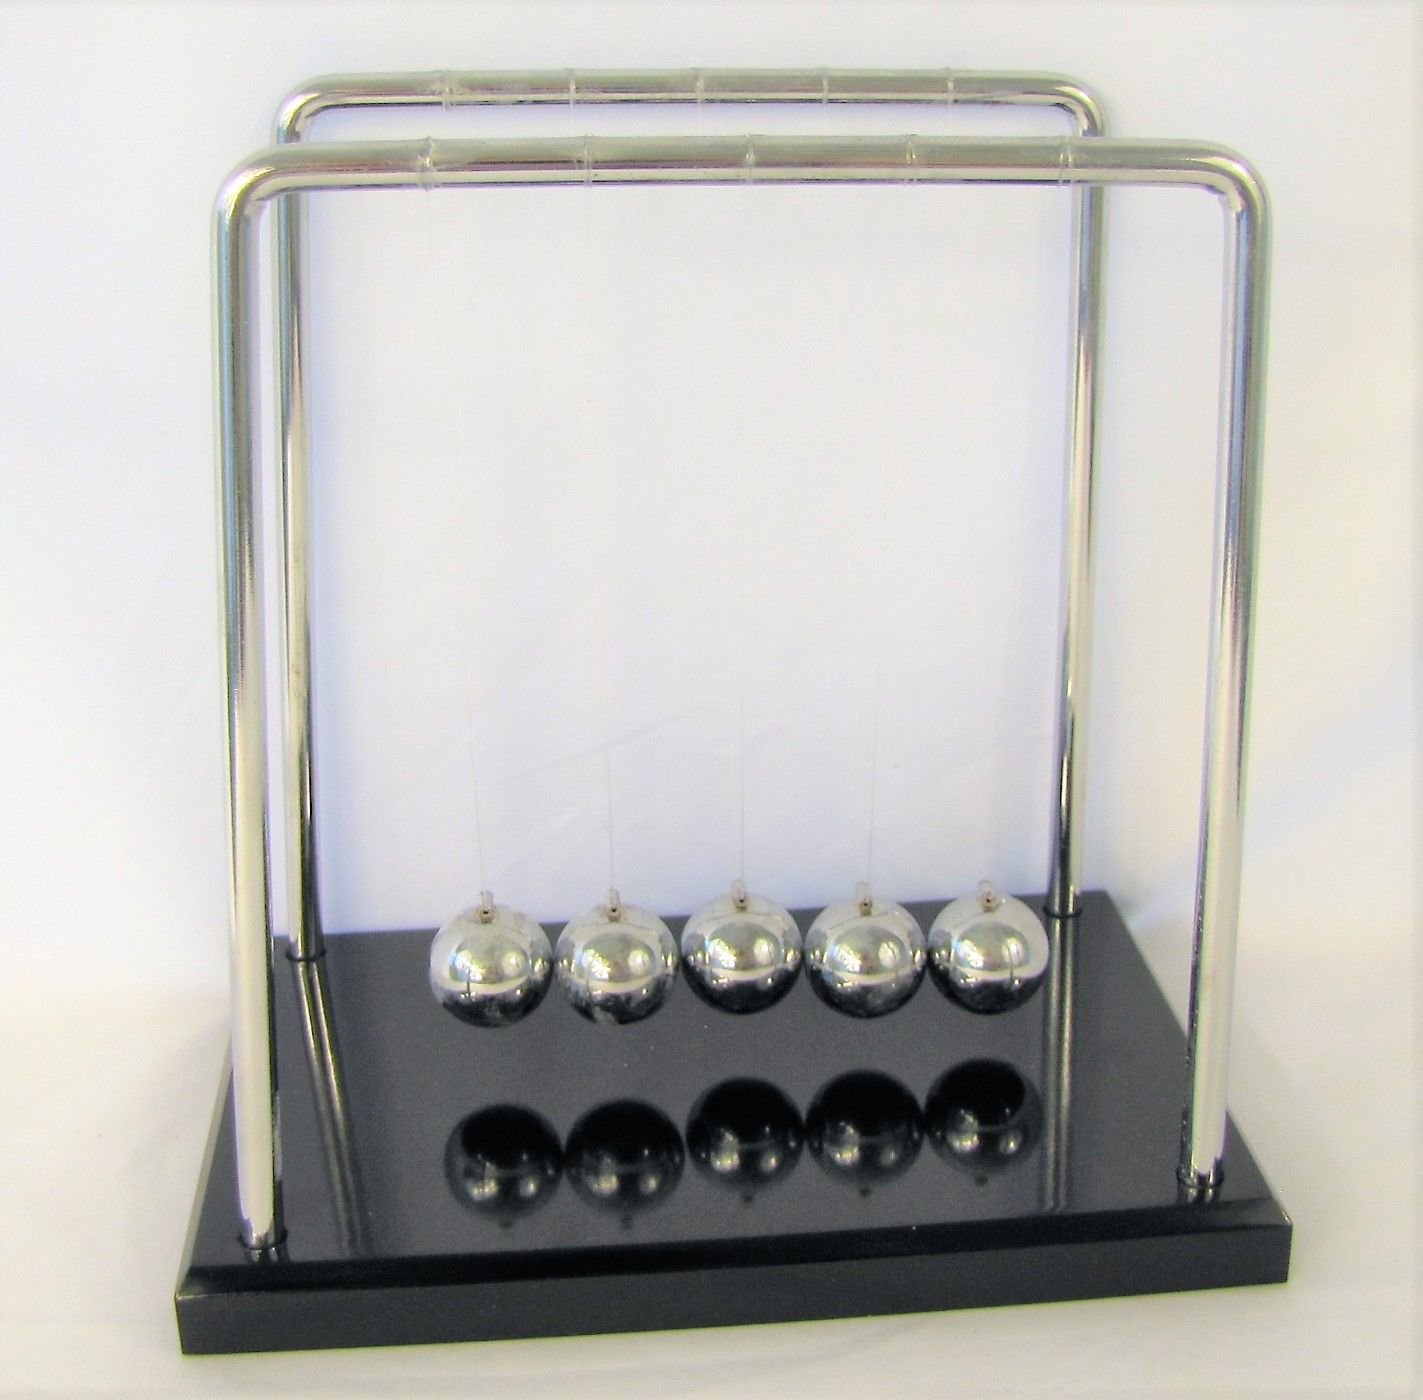 Newton's Cradle, Large Balance Ball Pendulum, Demonstrate Laws of Motion, Classical Physics Desktop Display, 7.25'' Height